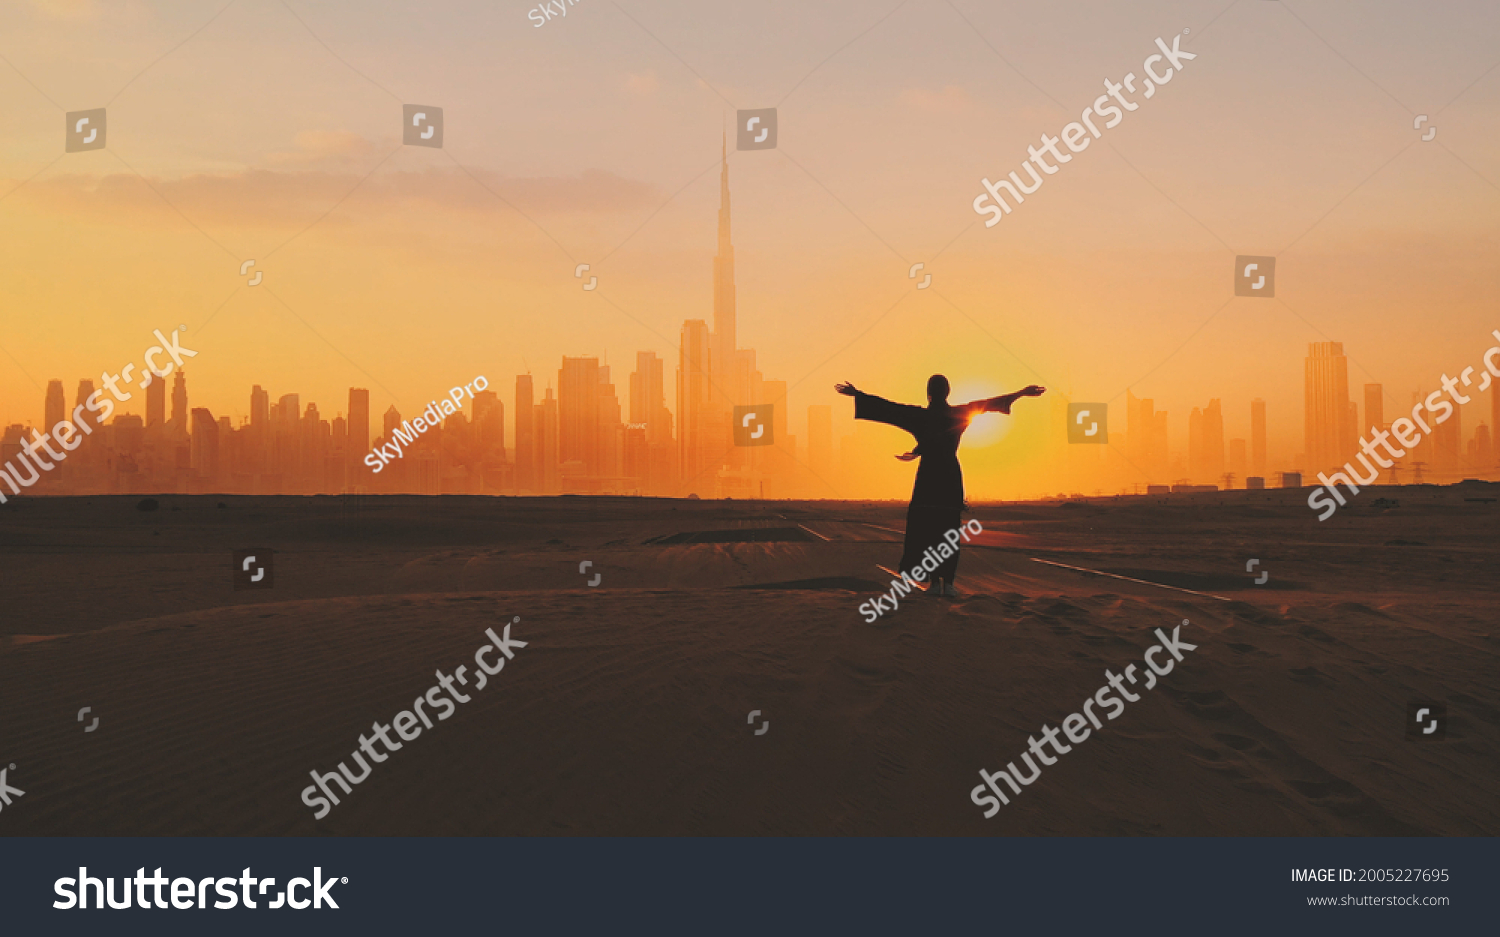 Arabic woman weared in traditional UAE dress - abayain rising her hands on the sunset at a desert with Dubai city silhouette on the background. #2005227695